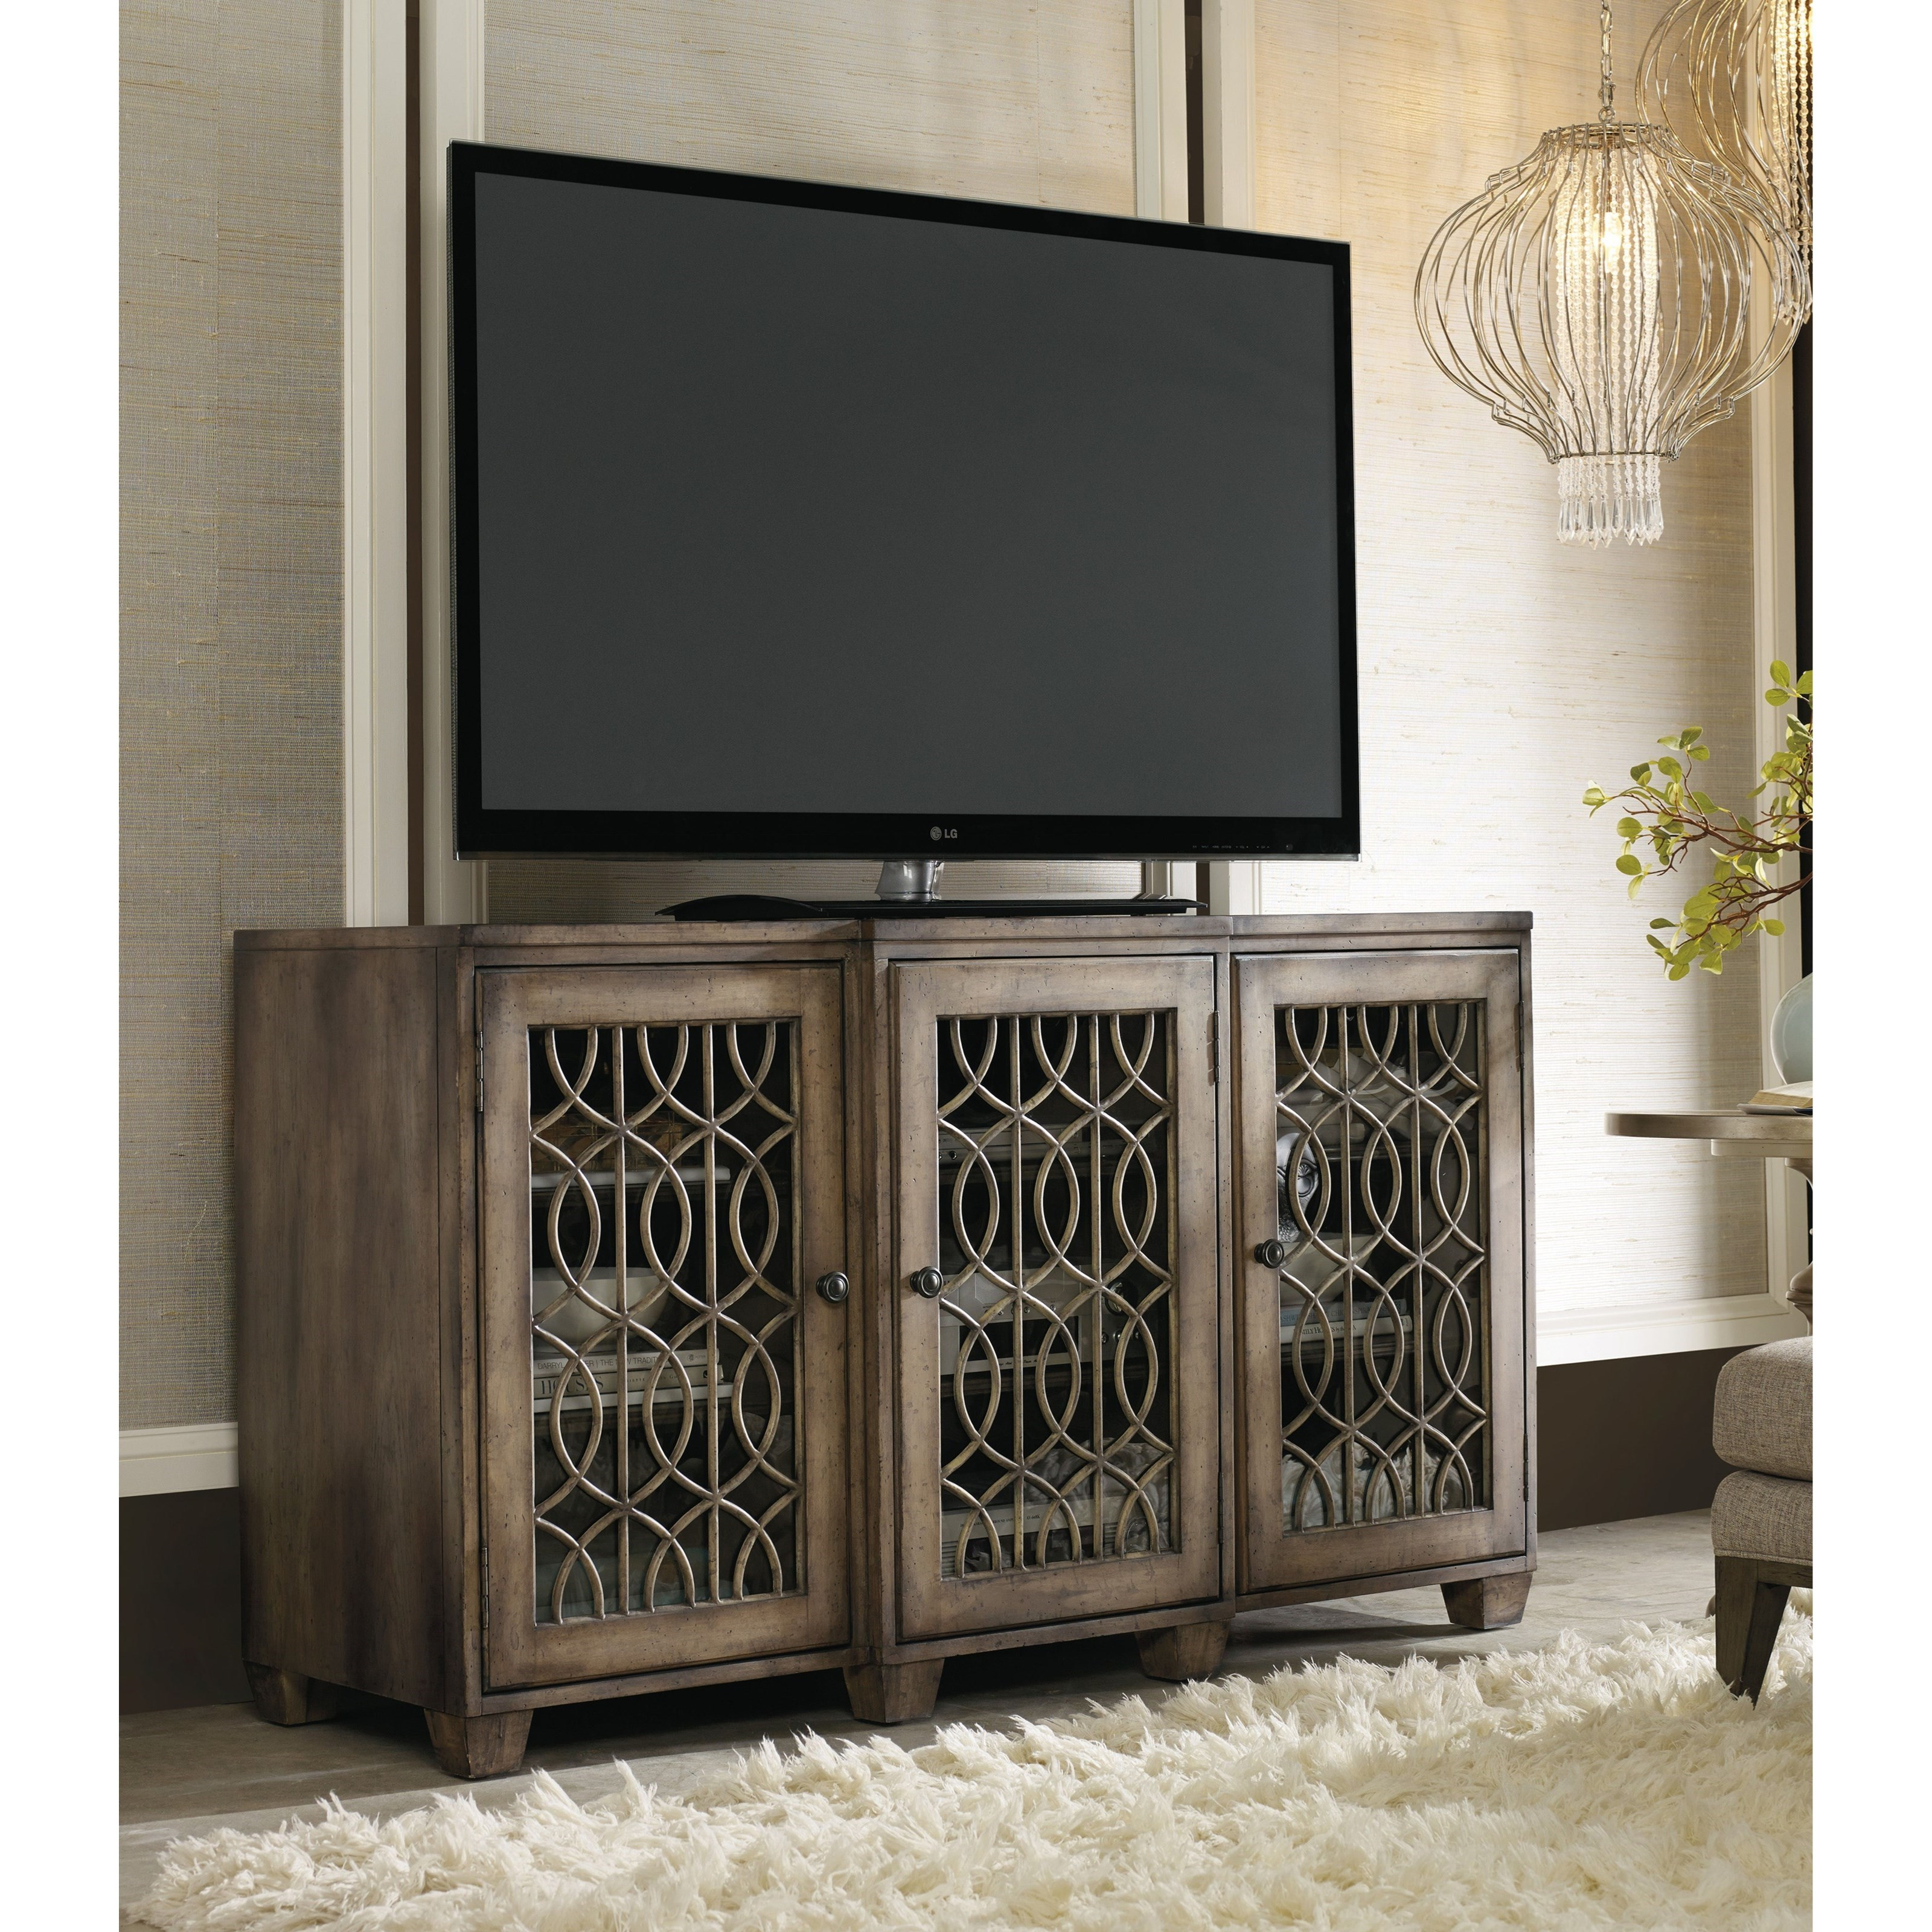 64in. Entertainment Console